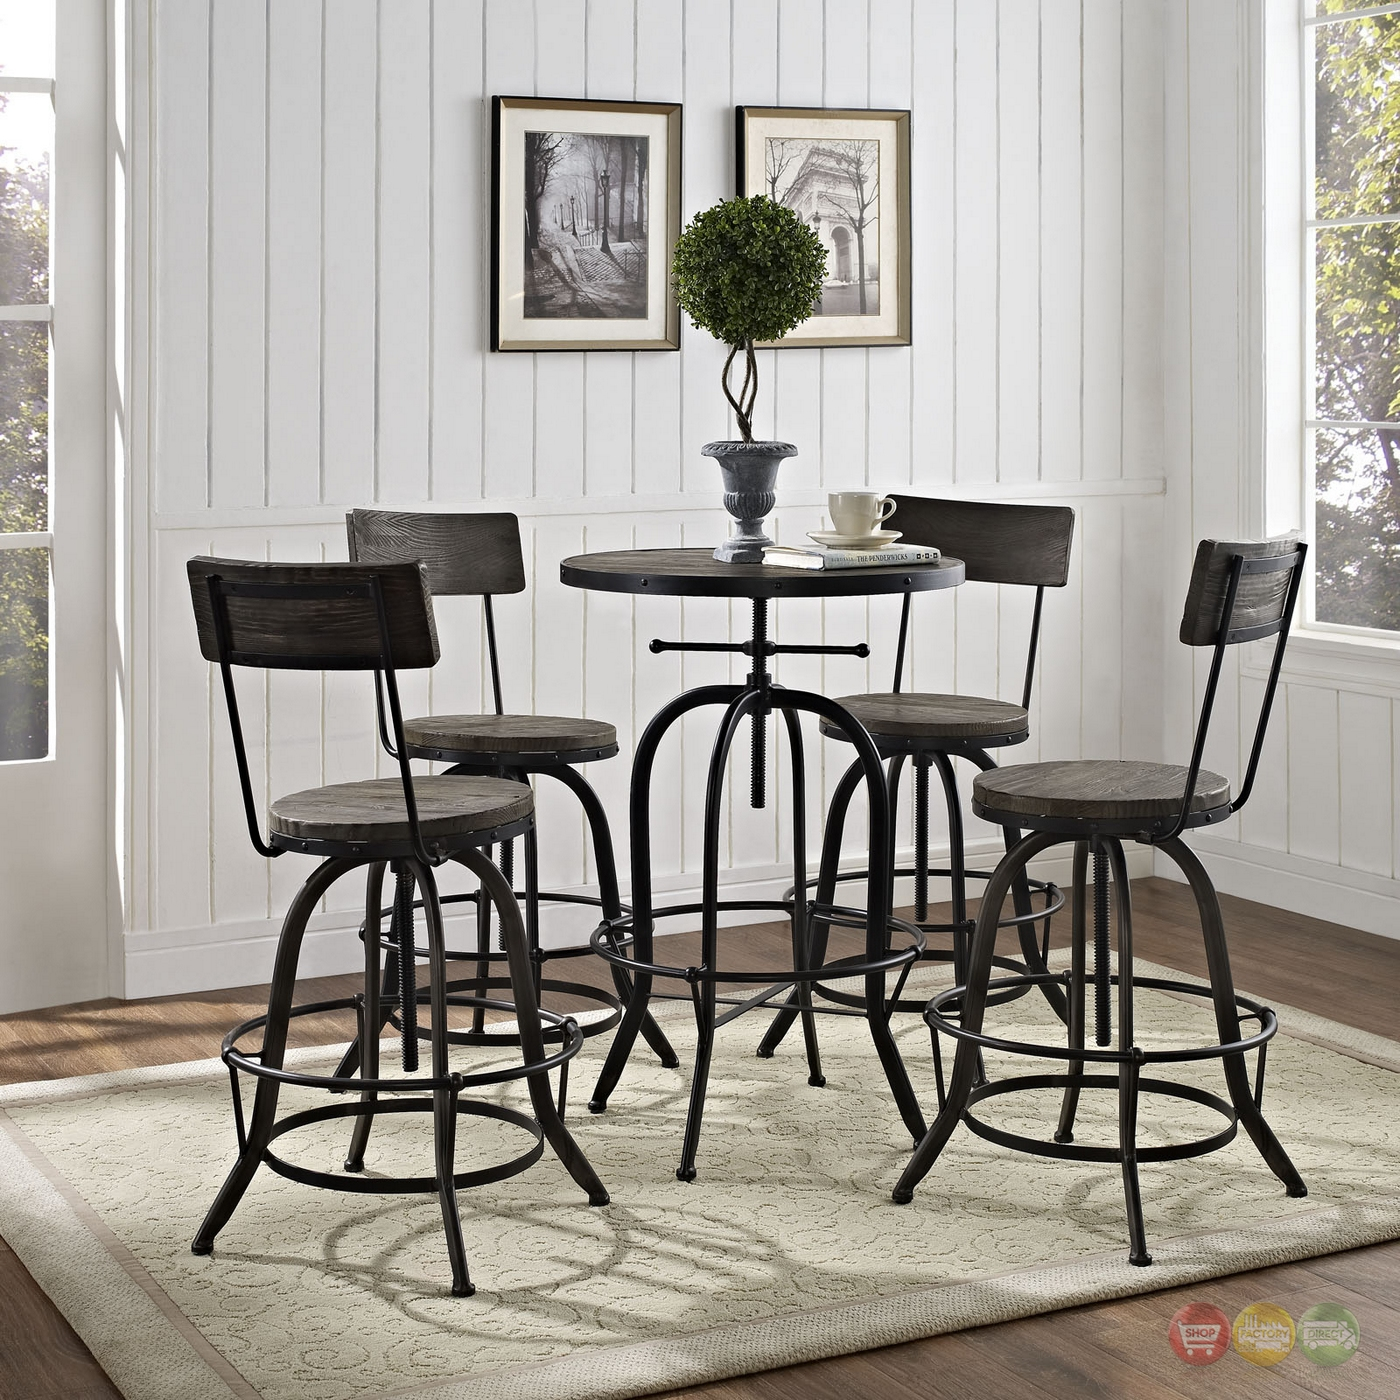 Set Of 4 Procure Industrial Bar Stool W Wood Seat Backs